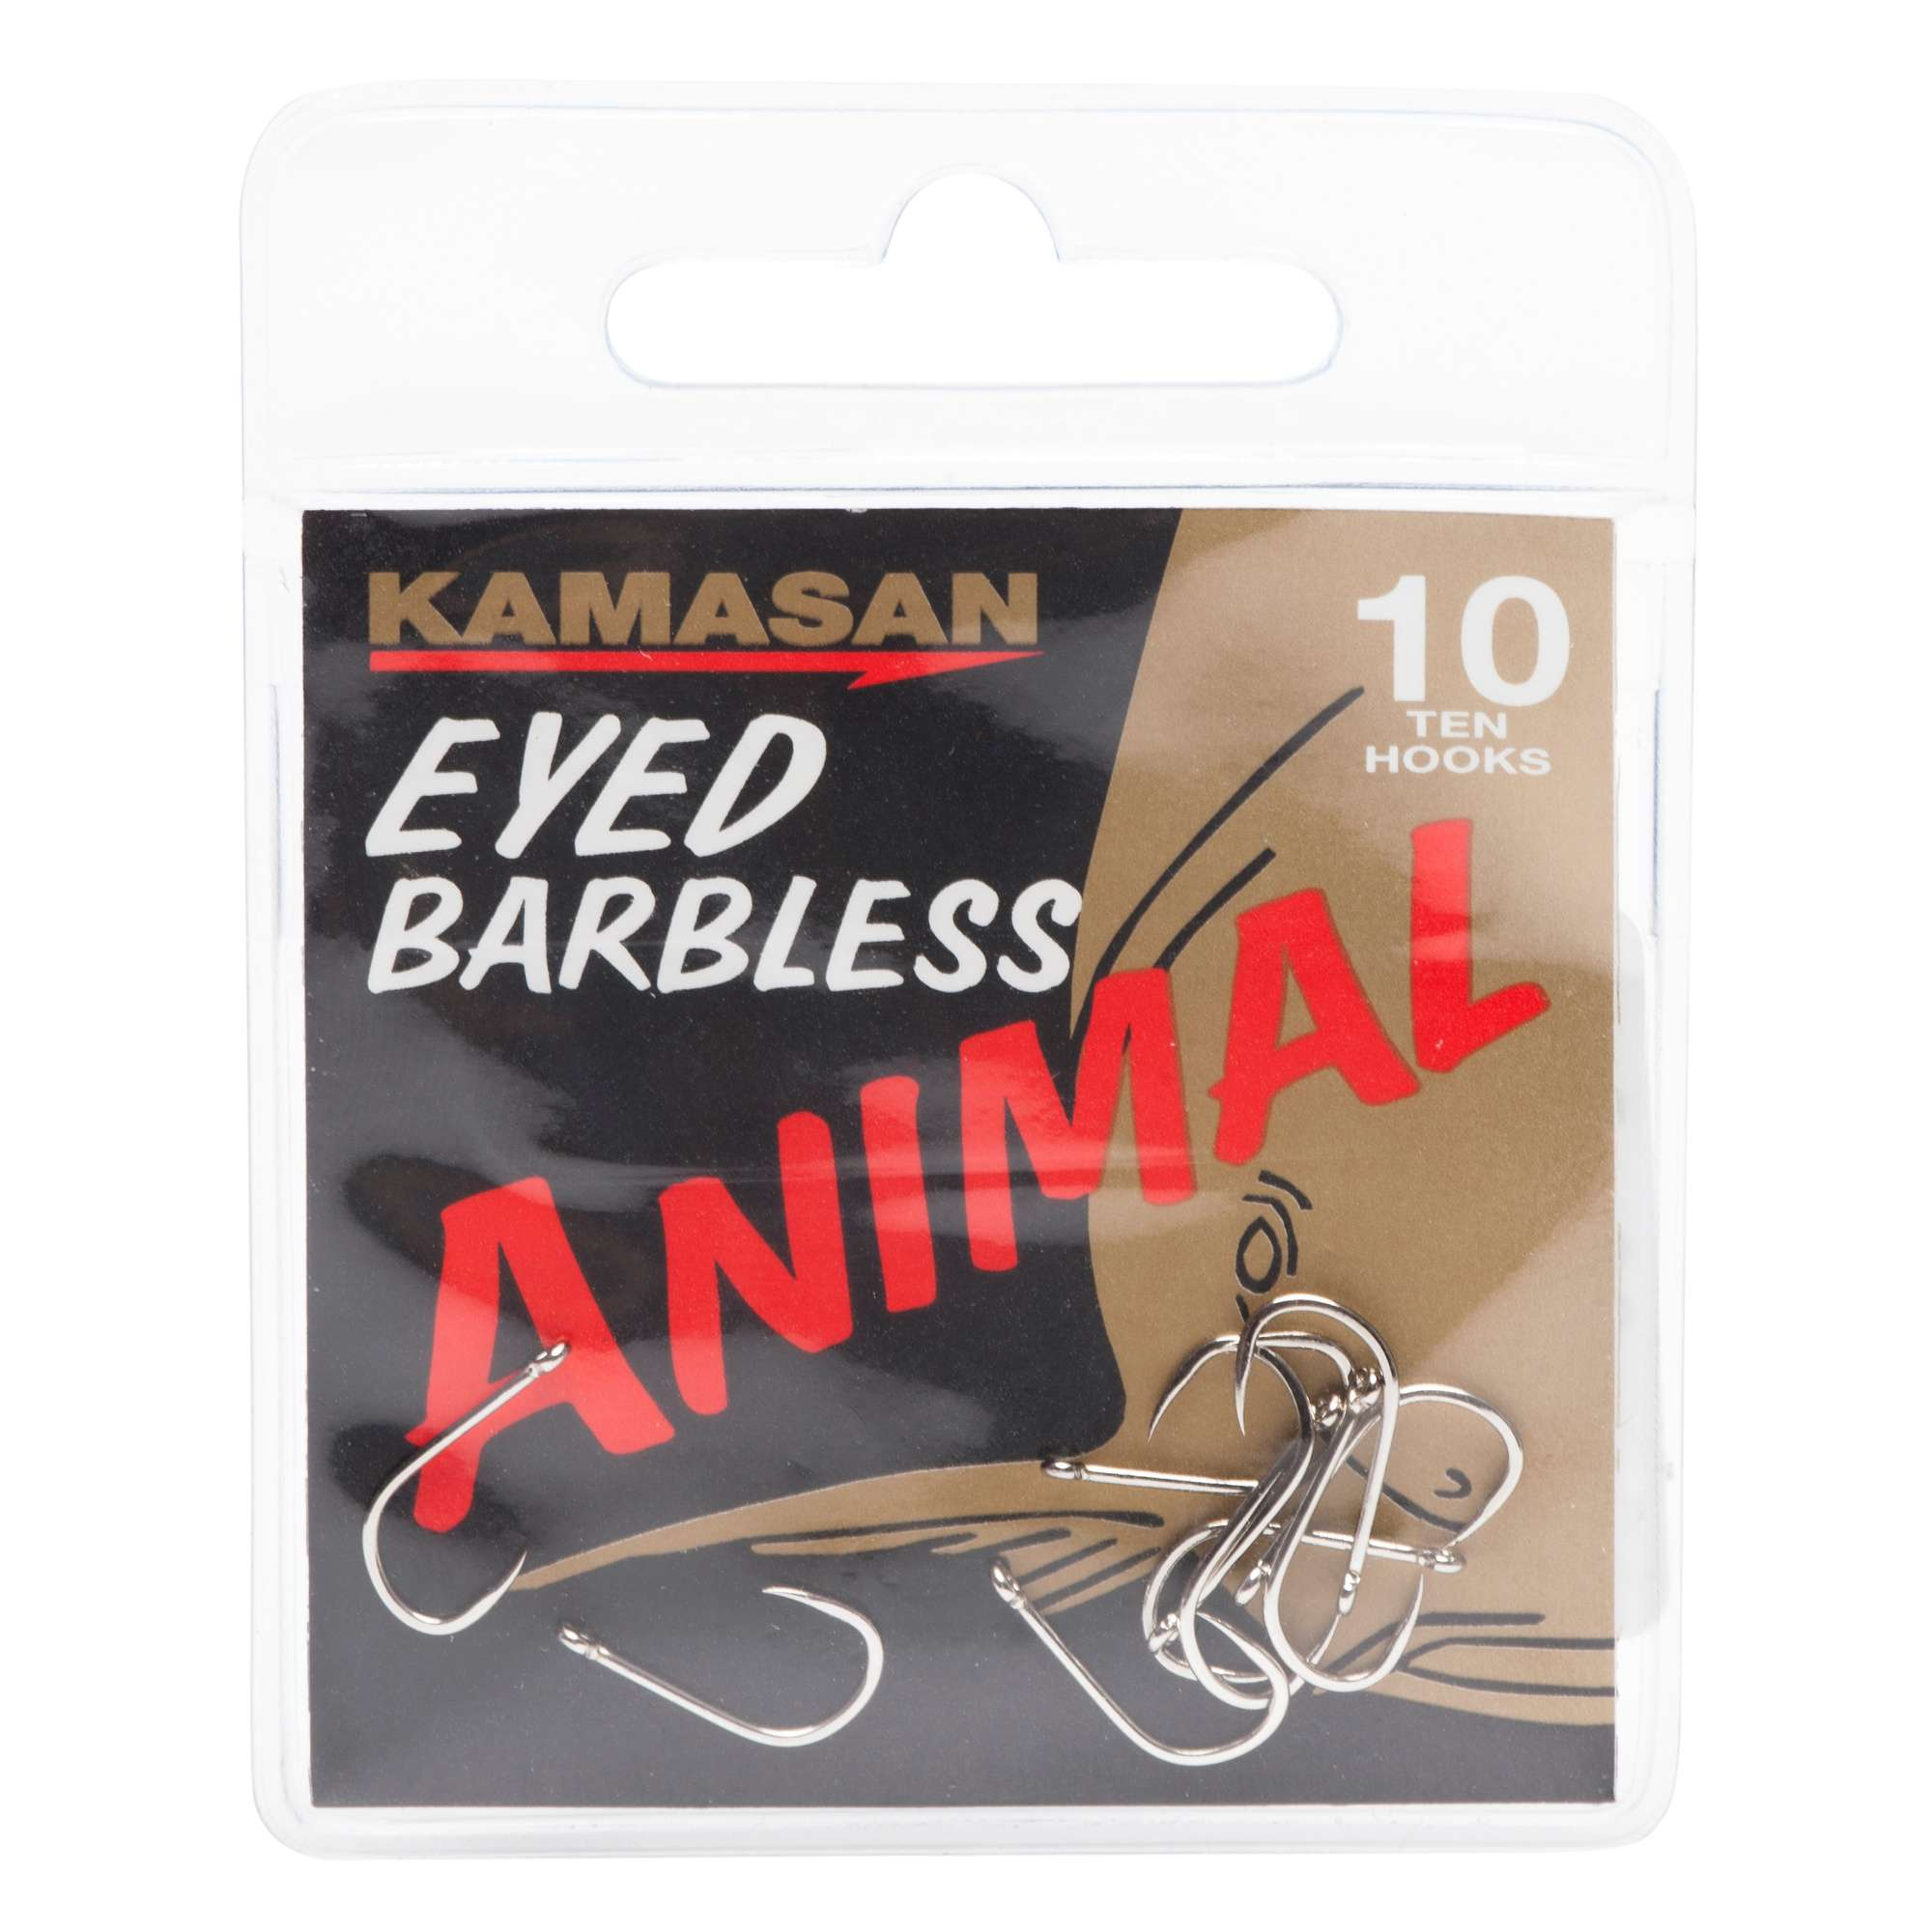 KAMASAN Animal Fishing Hooks - Size 10